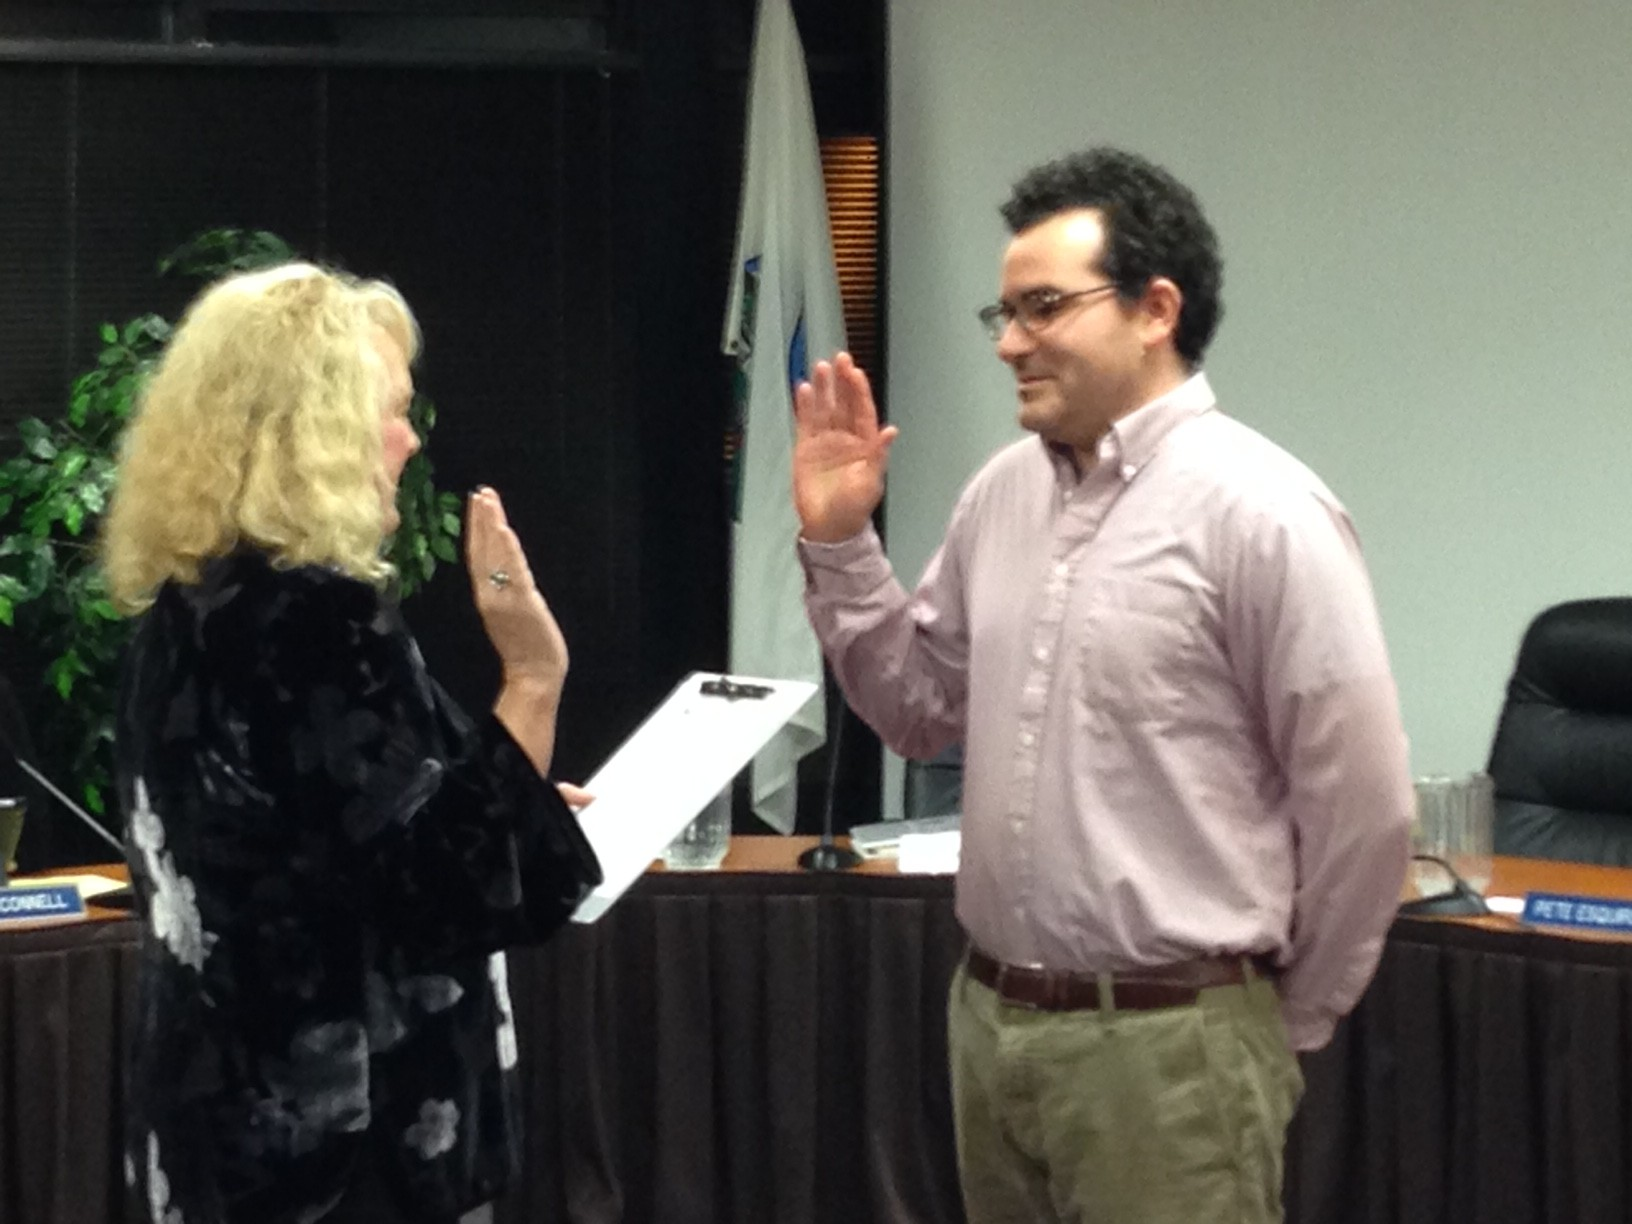 Goodbye, hello: Assembly seats elex winners, greets newcomers